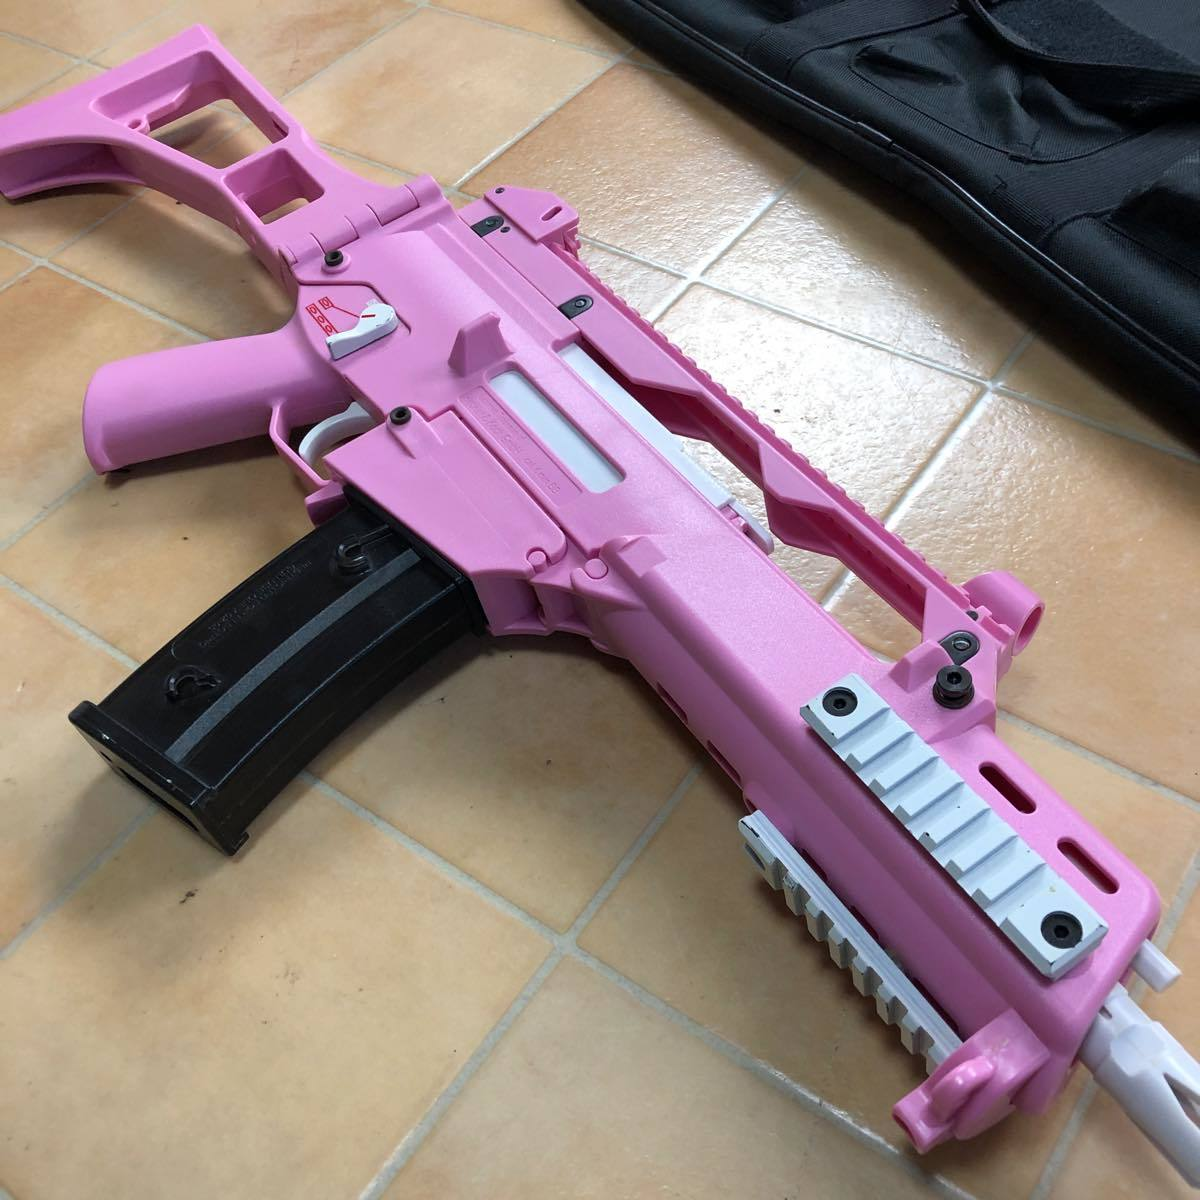 S&T G36C Competition 電動ガン Pink S&TAEG12PN  ピンク #906_画像6